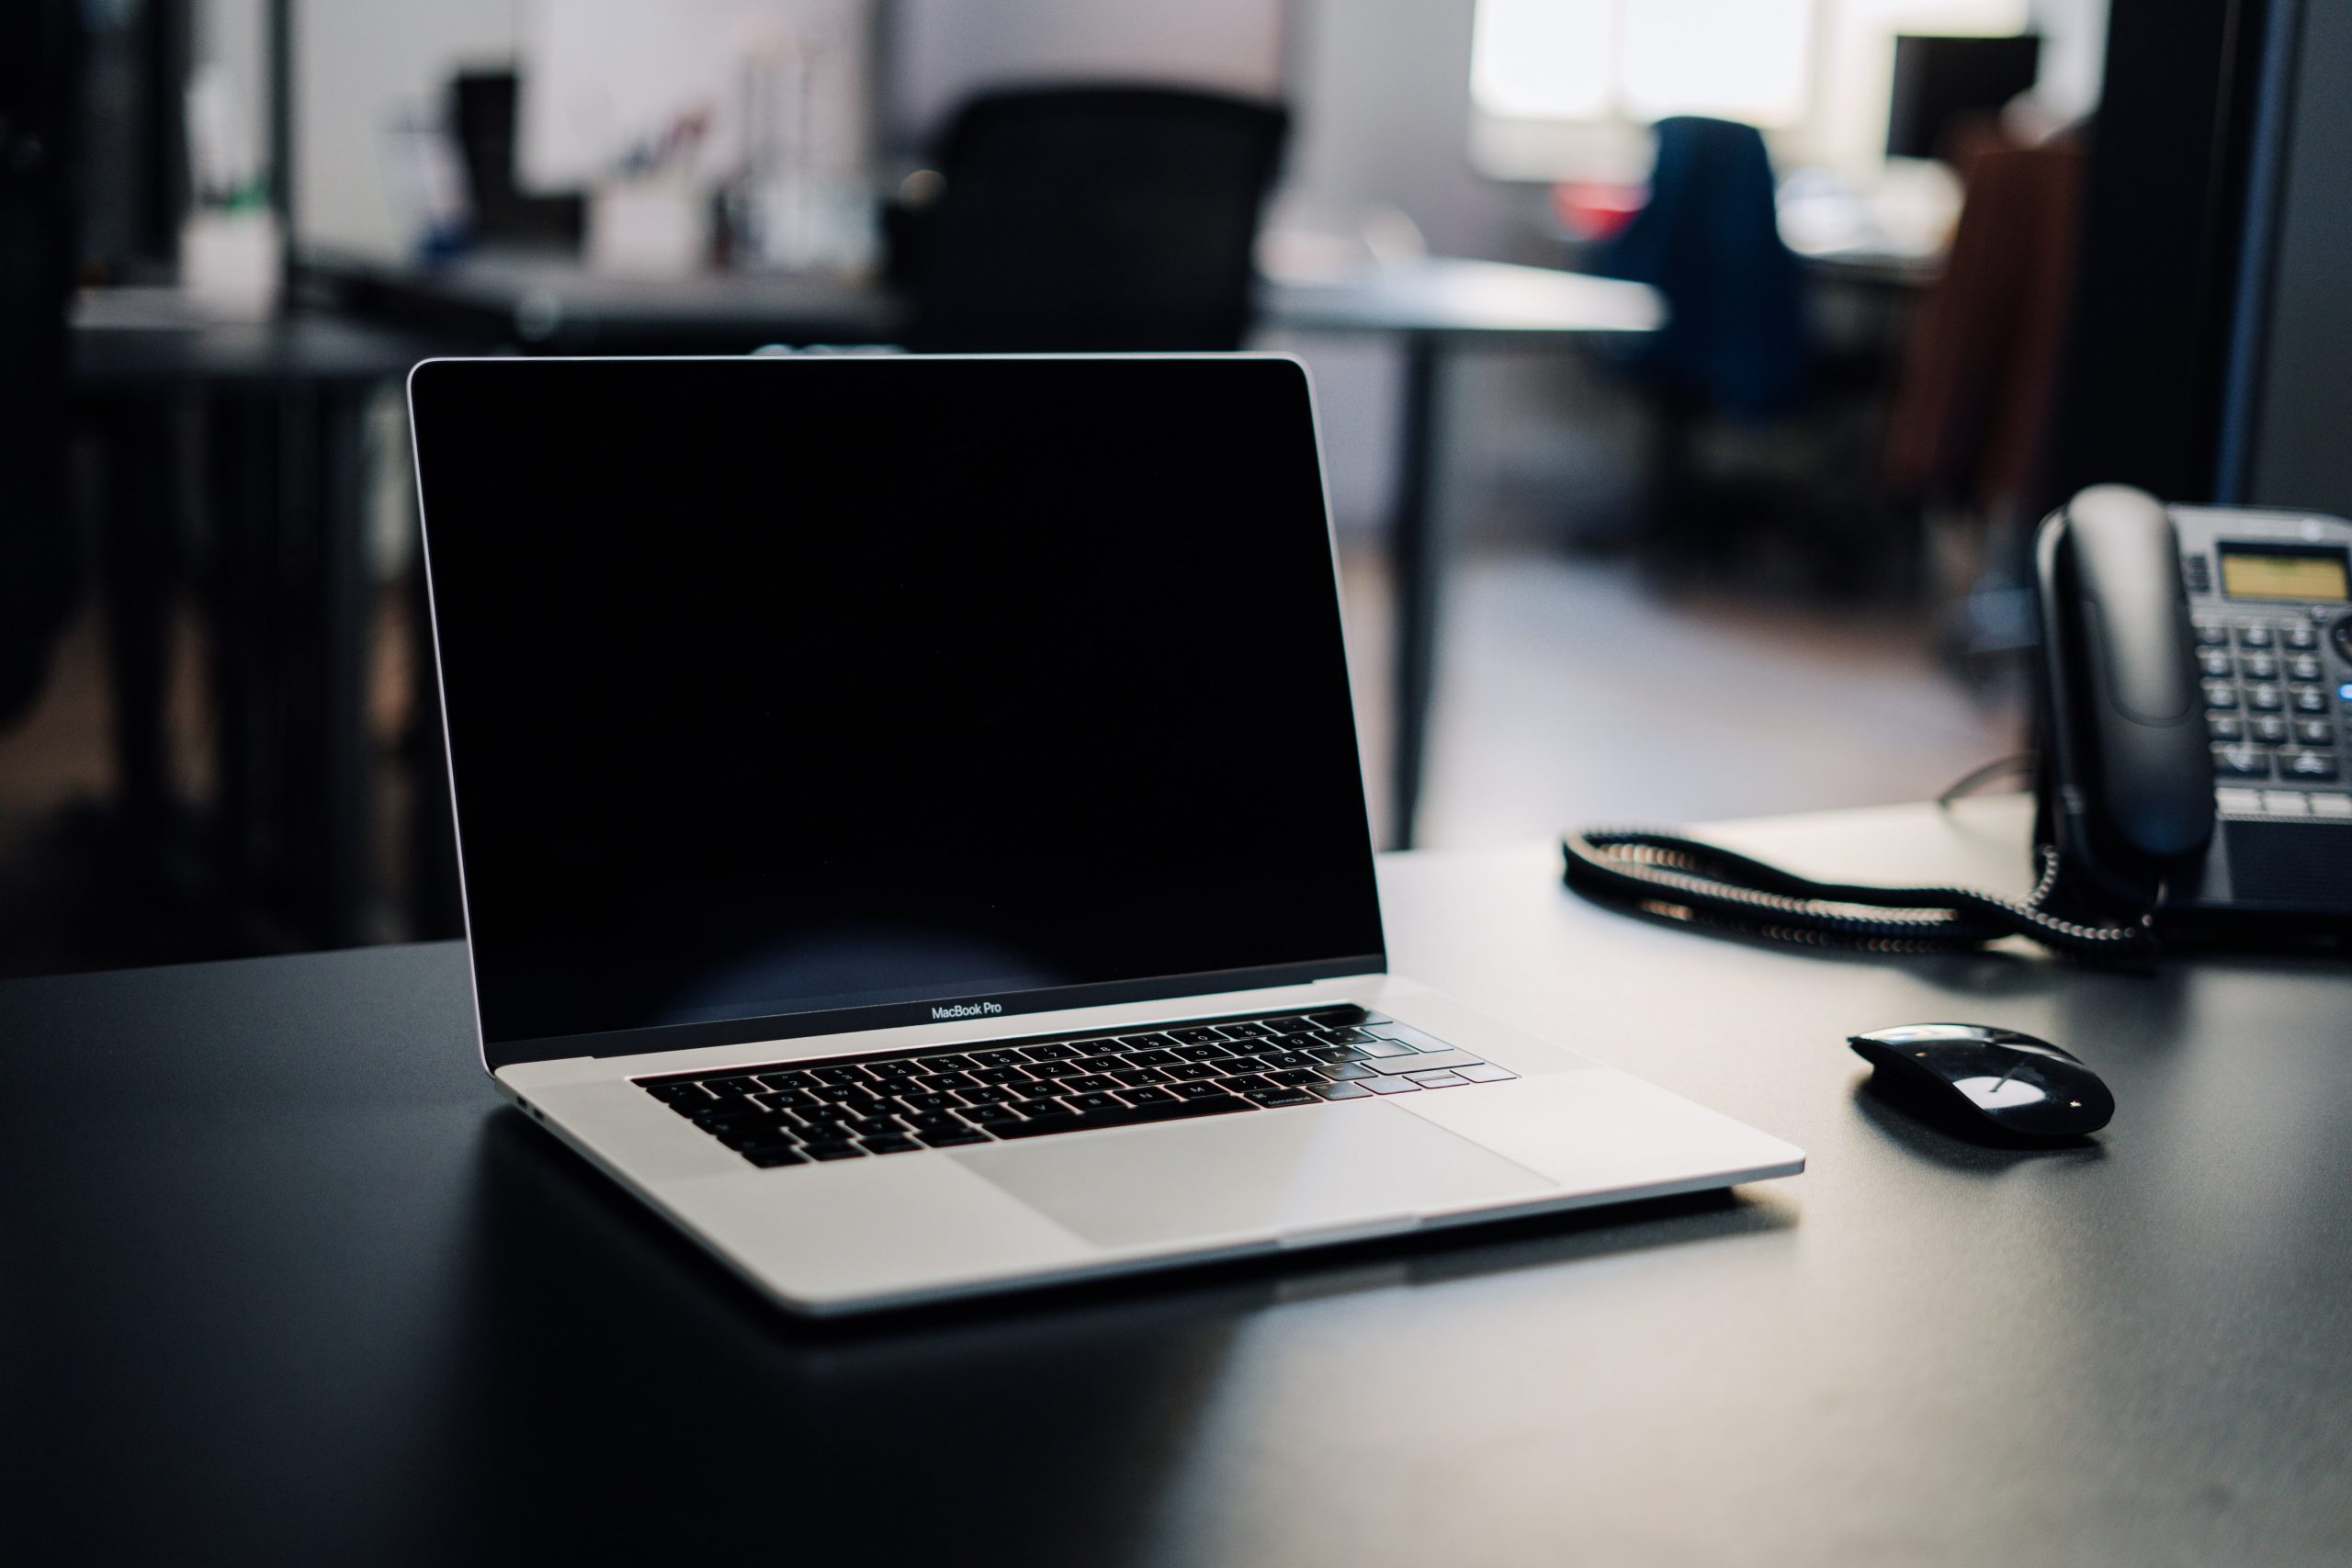 A MacBook sitting on a desk next to a mouse and a desk phone, with a blurred office background